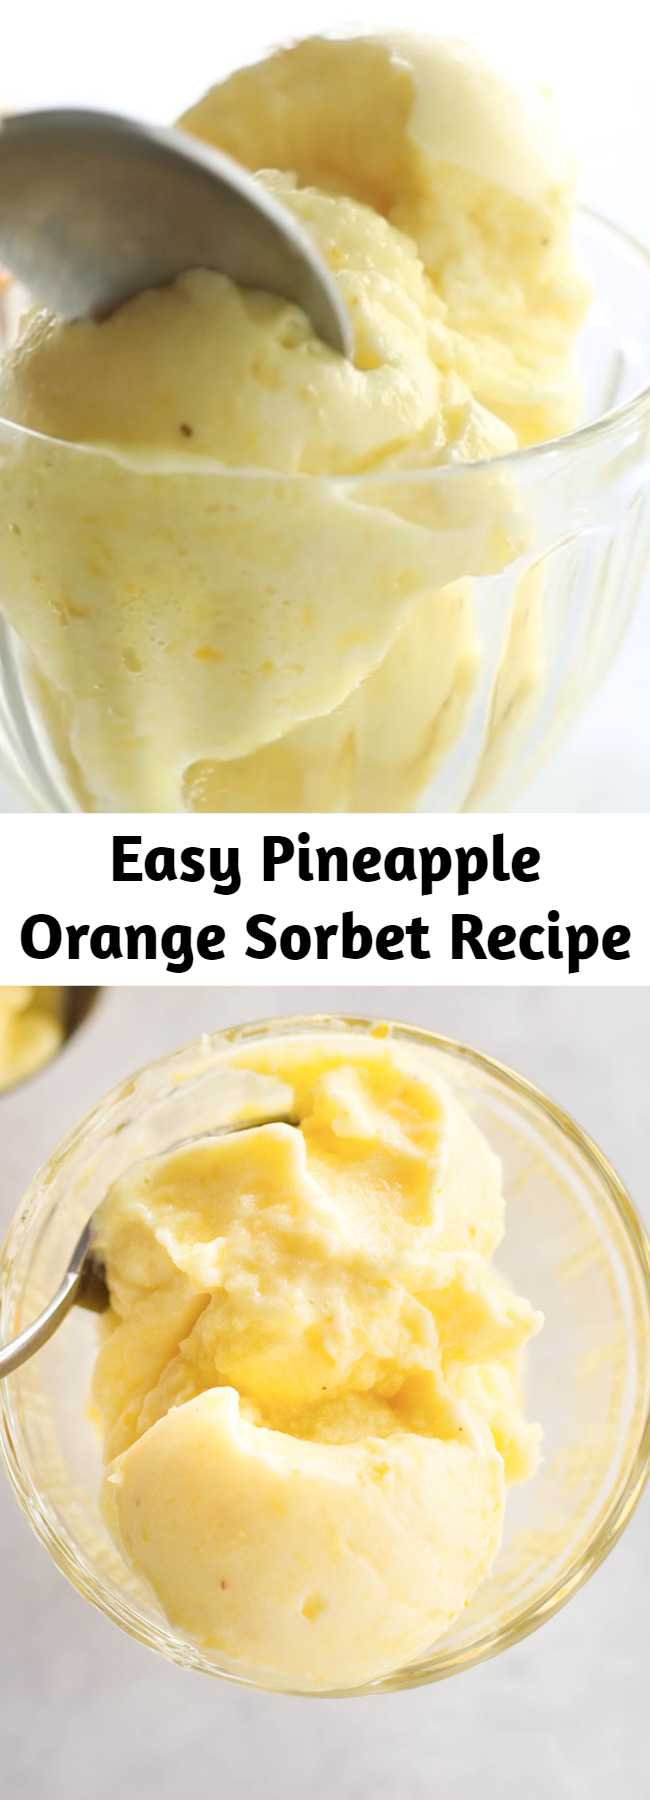 Easy Pineapple Orange Sorbet Recipe - Sorbet is sweeter when you make it with two fruits instead of just one.